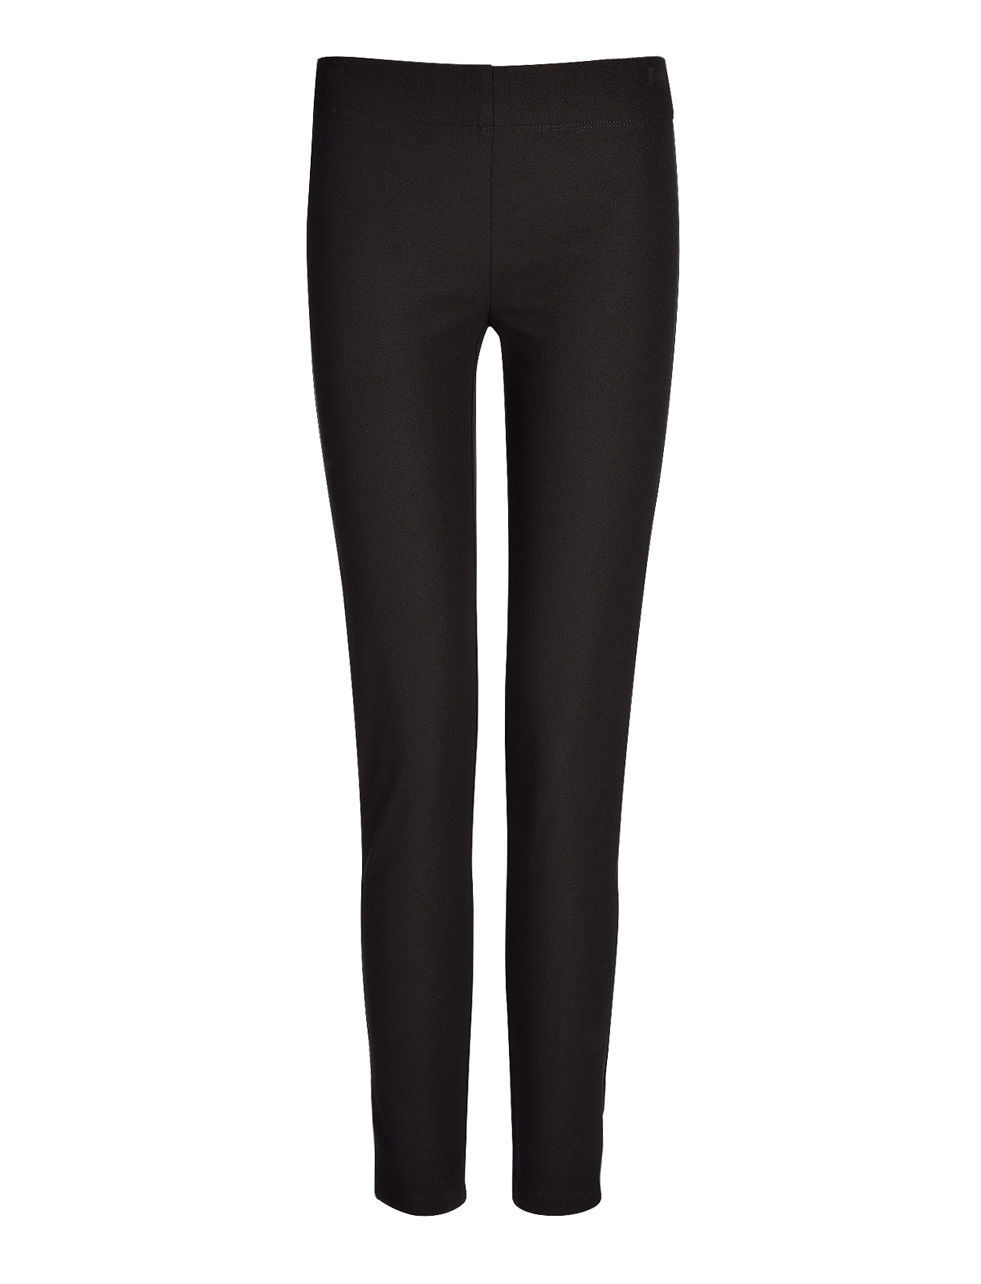 Gabardine Stretch Legging In Black - length: standard; pattern: plain; style: leggings; waist: mid/regular rise; predominant colour: black; occasions: casual, creative work; fibres: polyester/polyamide - stretch; texture group: jersey - clingy; fit: skinny/tight leg; pattern type: fabric; season: s/s 2016; wardrobe: basic